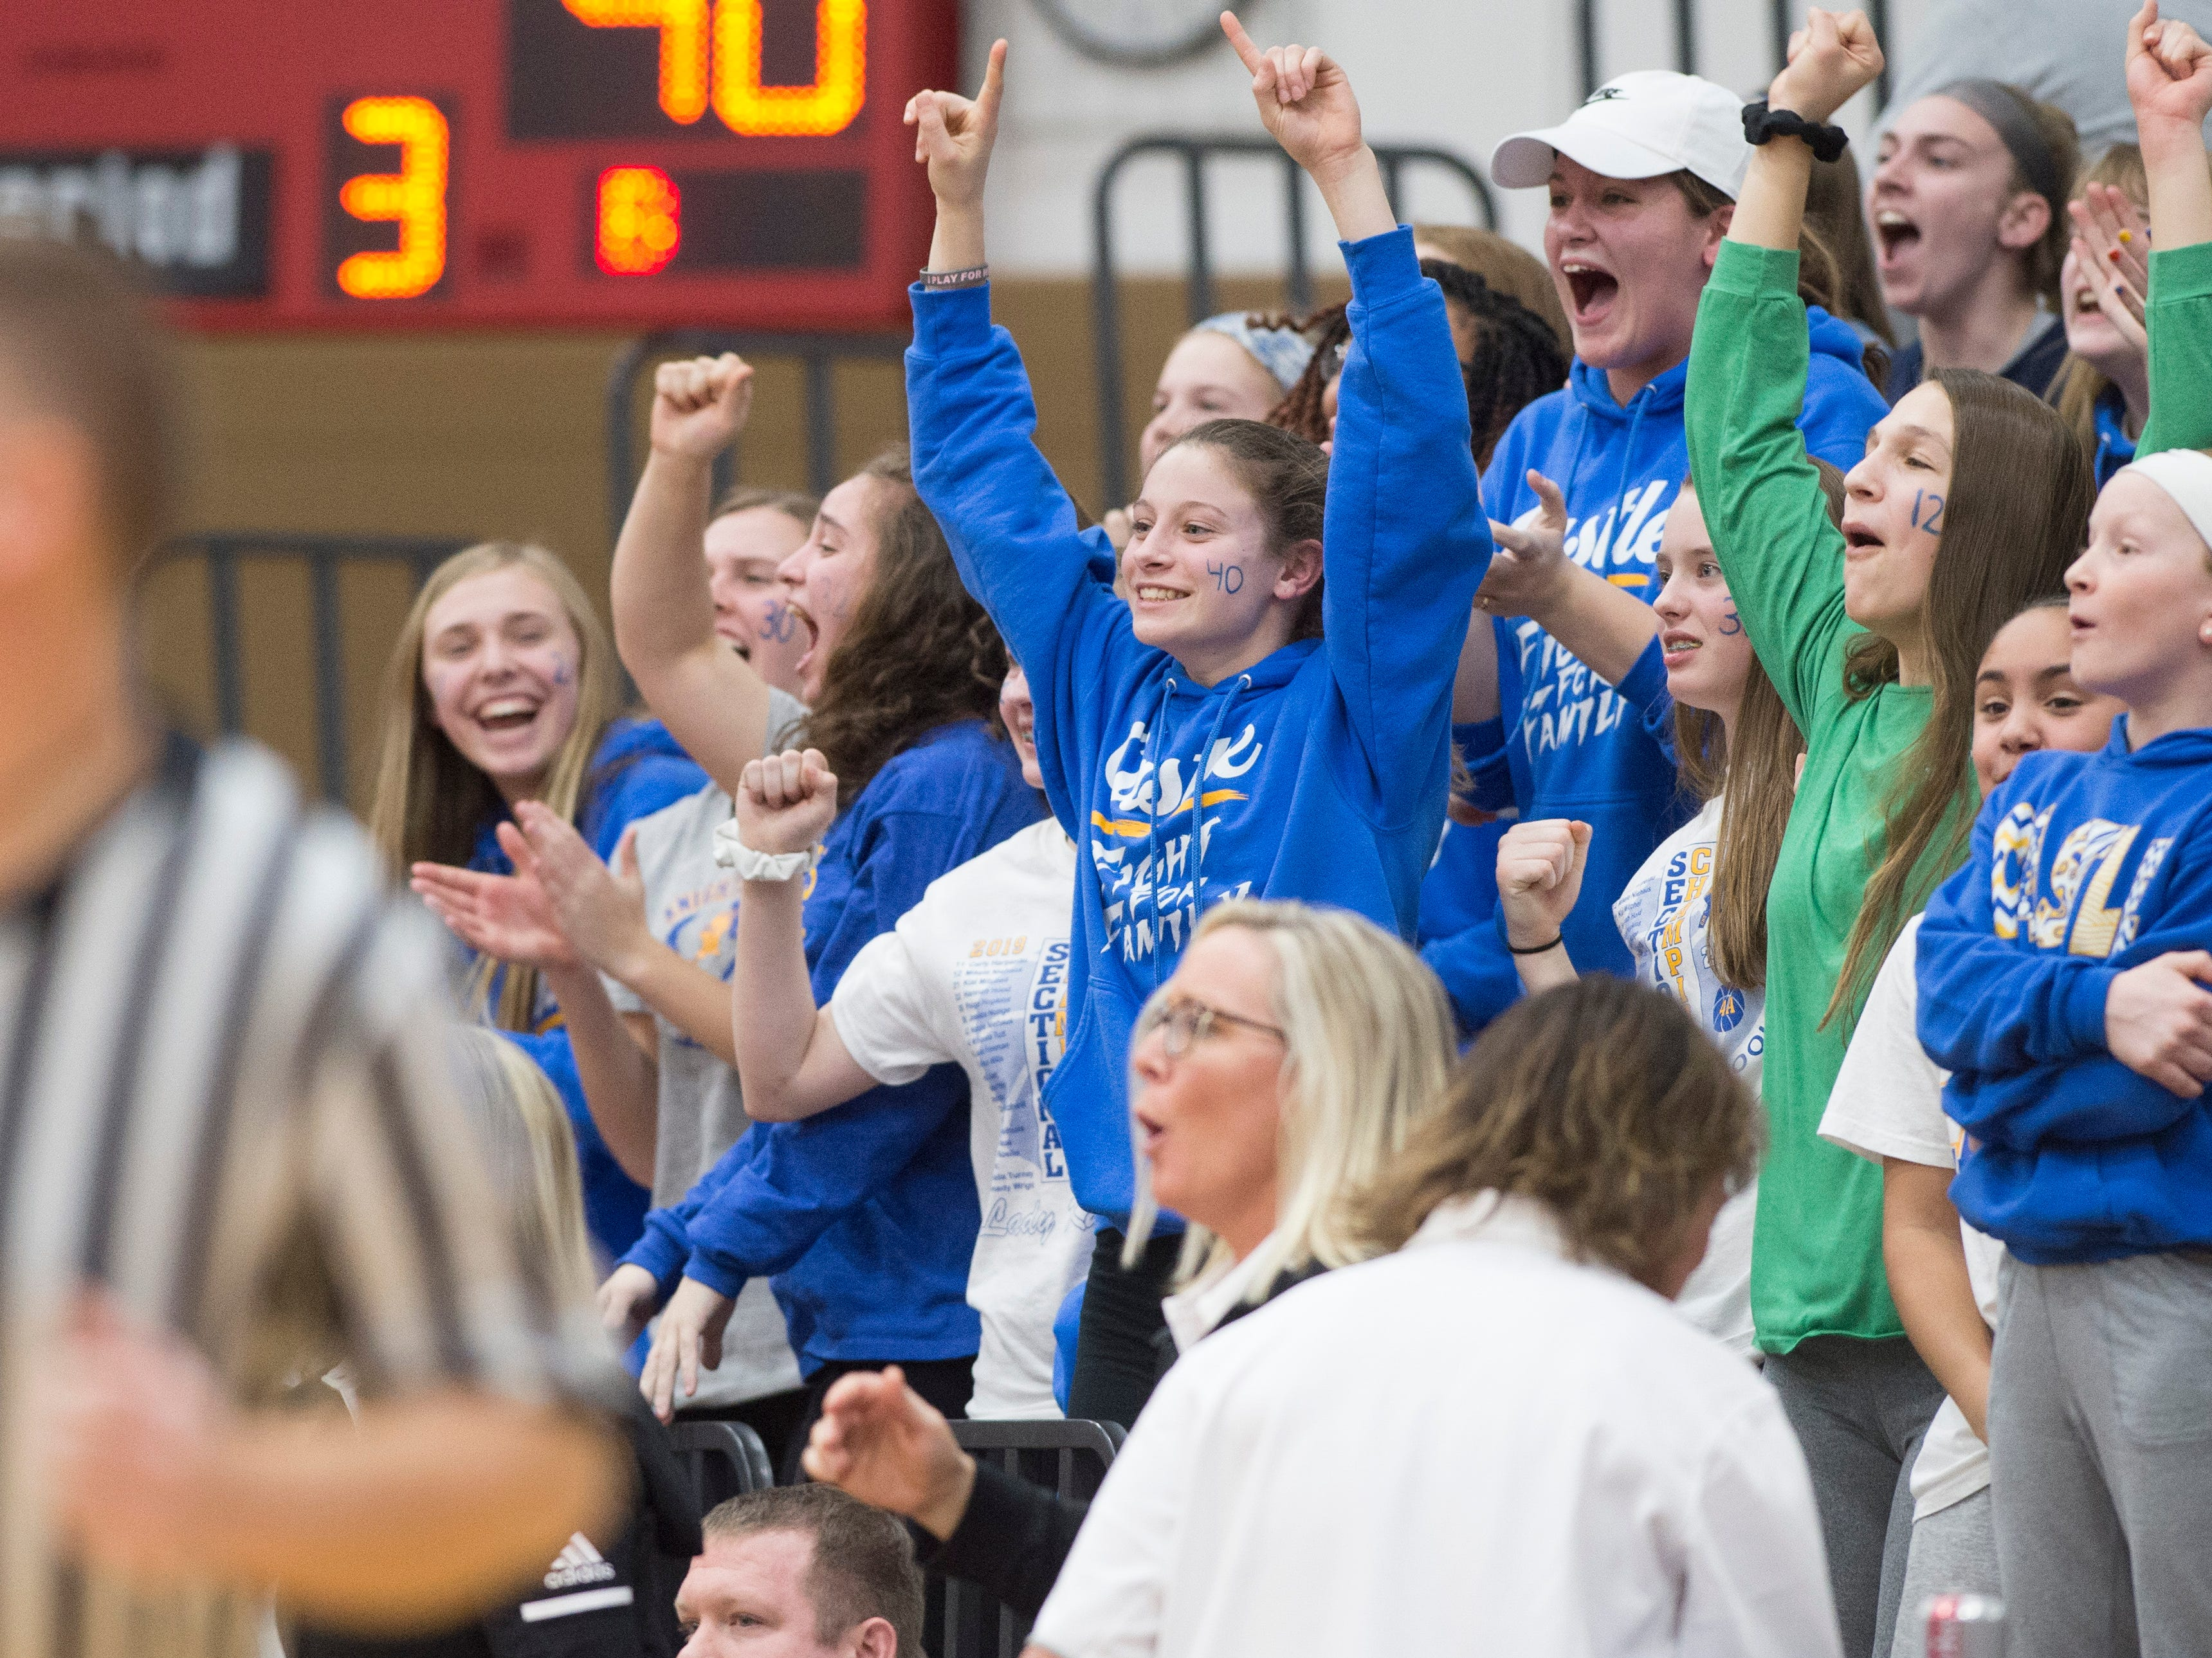 The Castle Knights JV girls baksetball team cheer on their fellows Knights during the IHSAA Girls Basketball Class 4A Regional Championship game against the Bedford North Lawrence Lady Stars at the Stars Field House in Bedford, Ind. Saturday, Feb. 9, 2019.